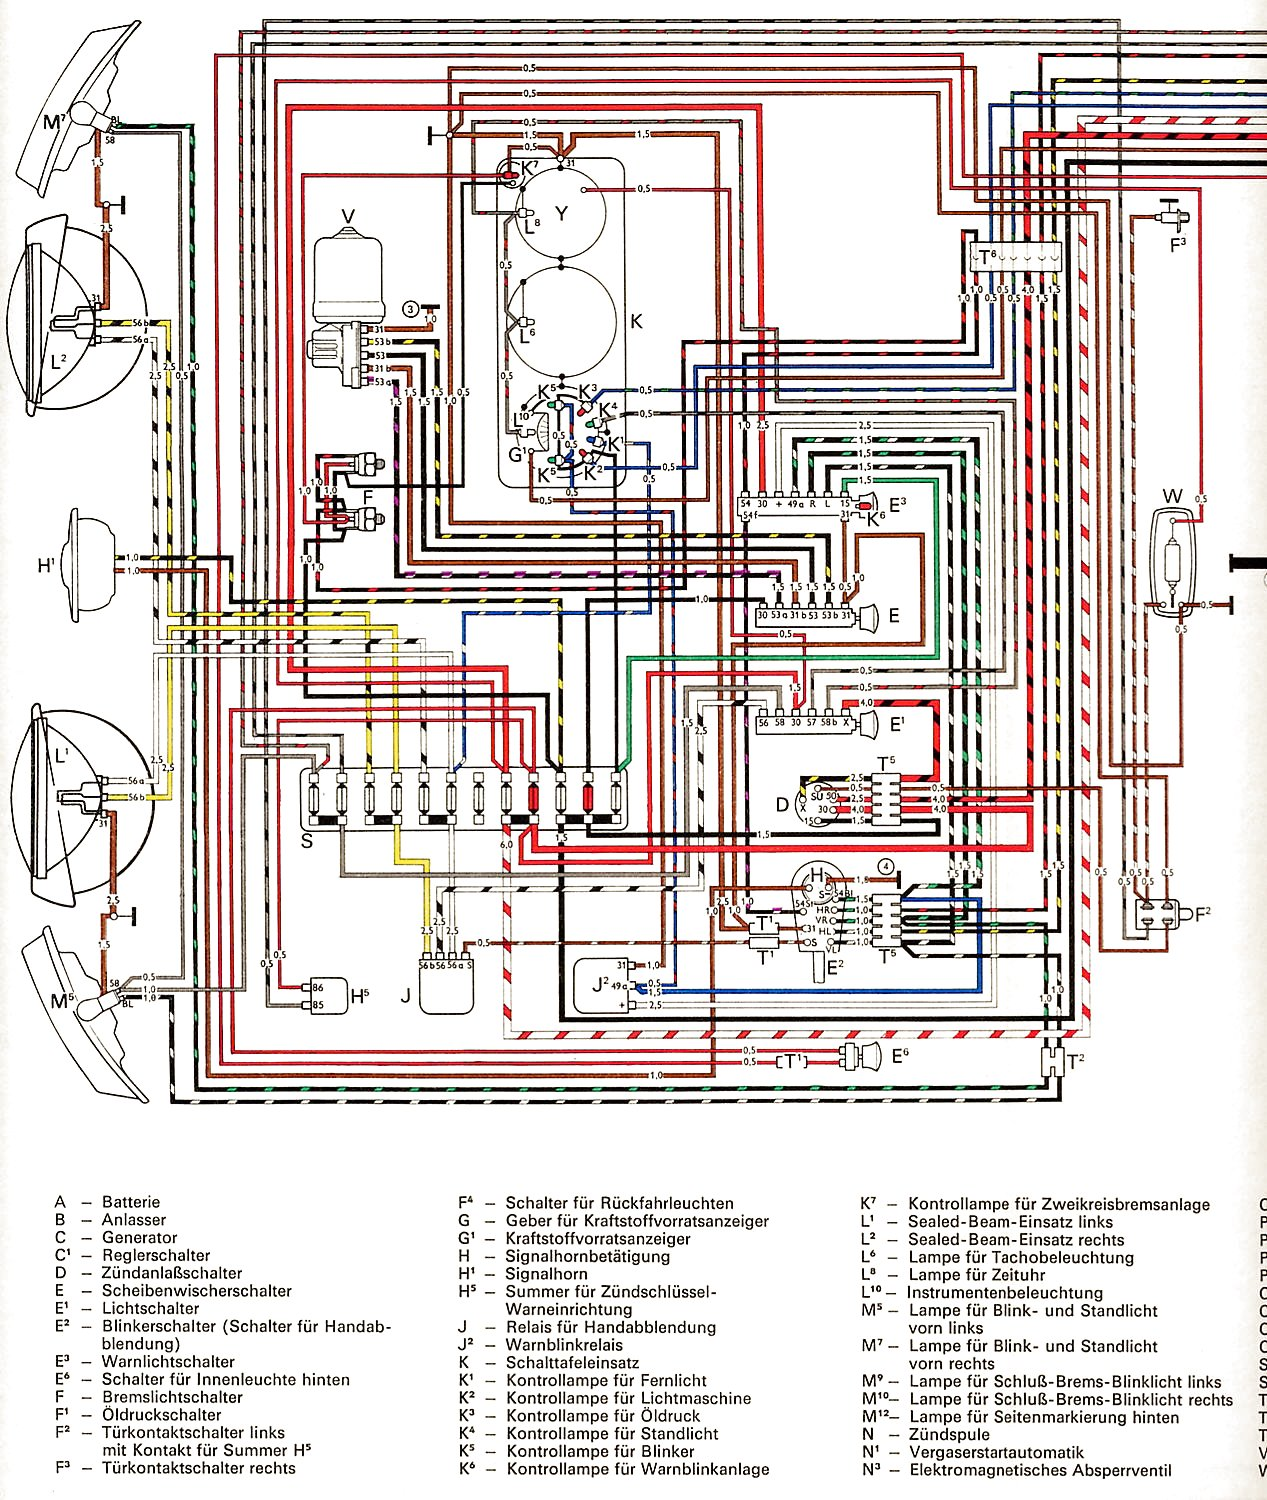 Transporter_USA_from_August_1970 1 vw beetle wiring diagram 1974 1973 vw beetle wiring diagram 1975 vw beetle wiring harness at eliteediting.co